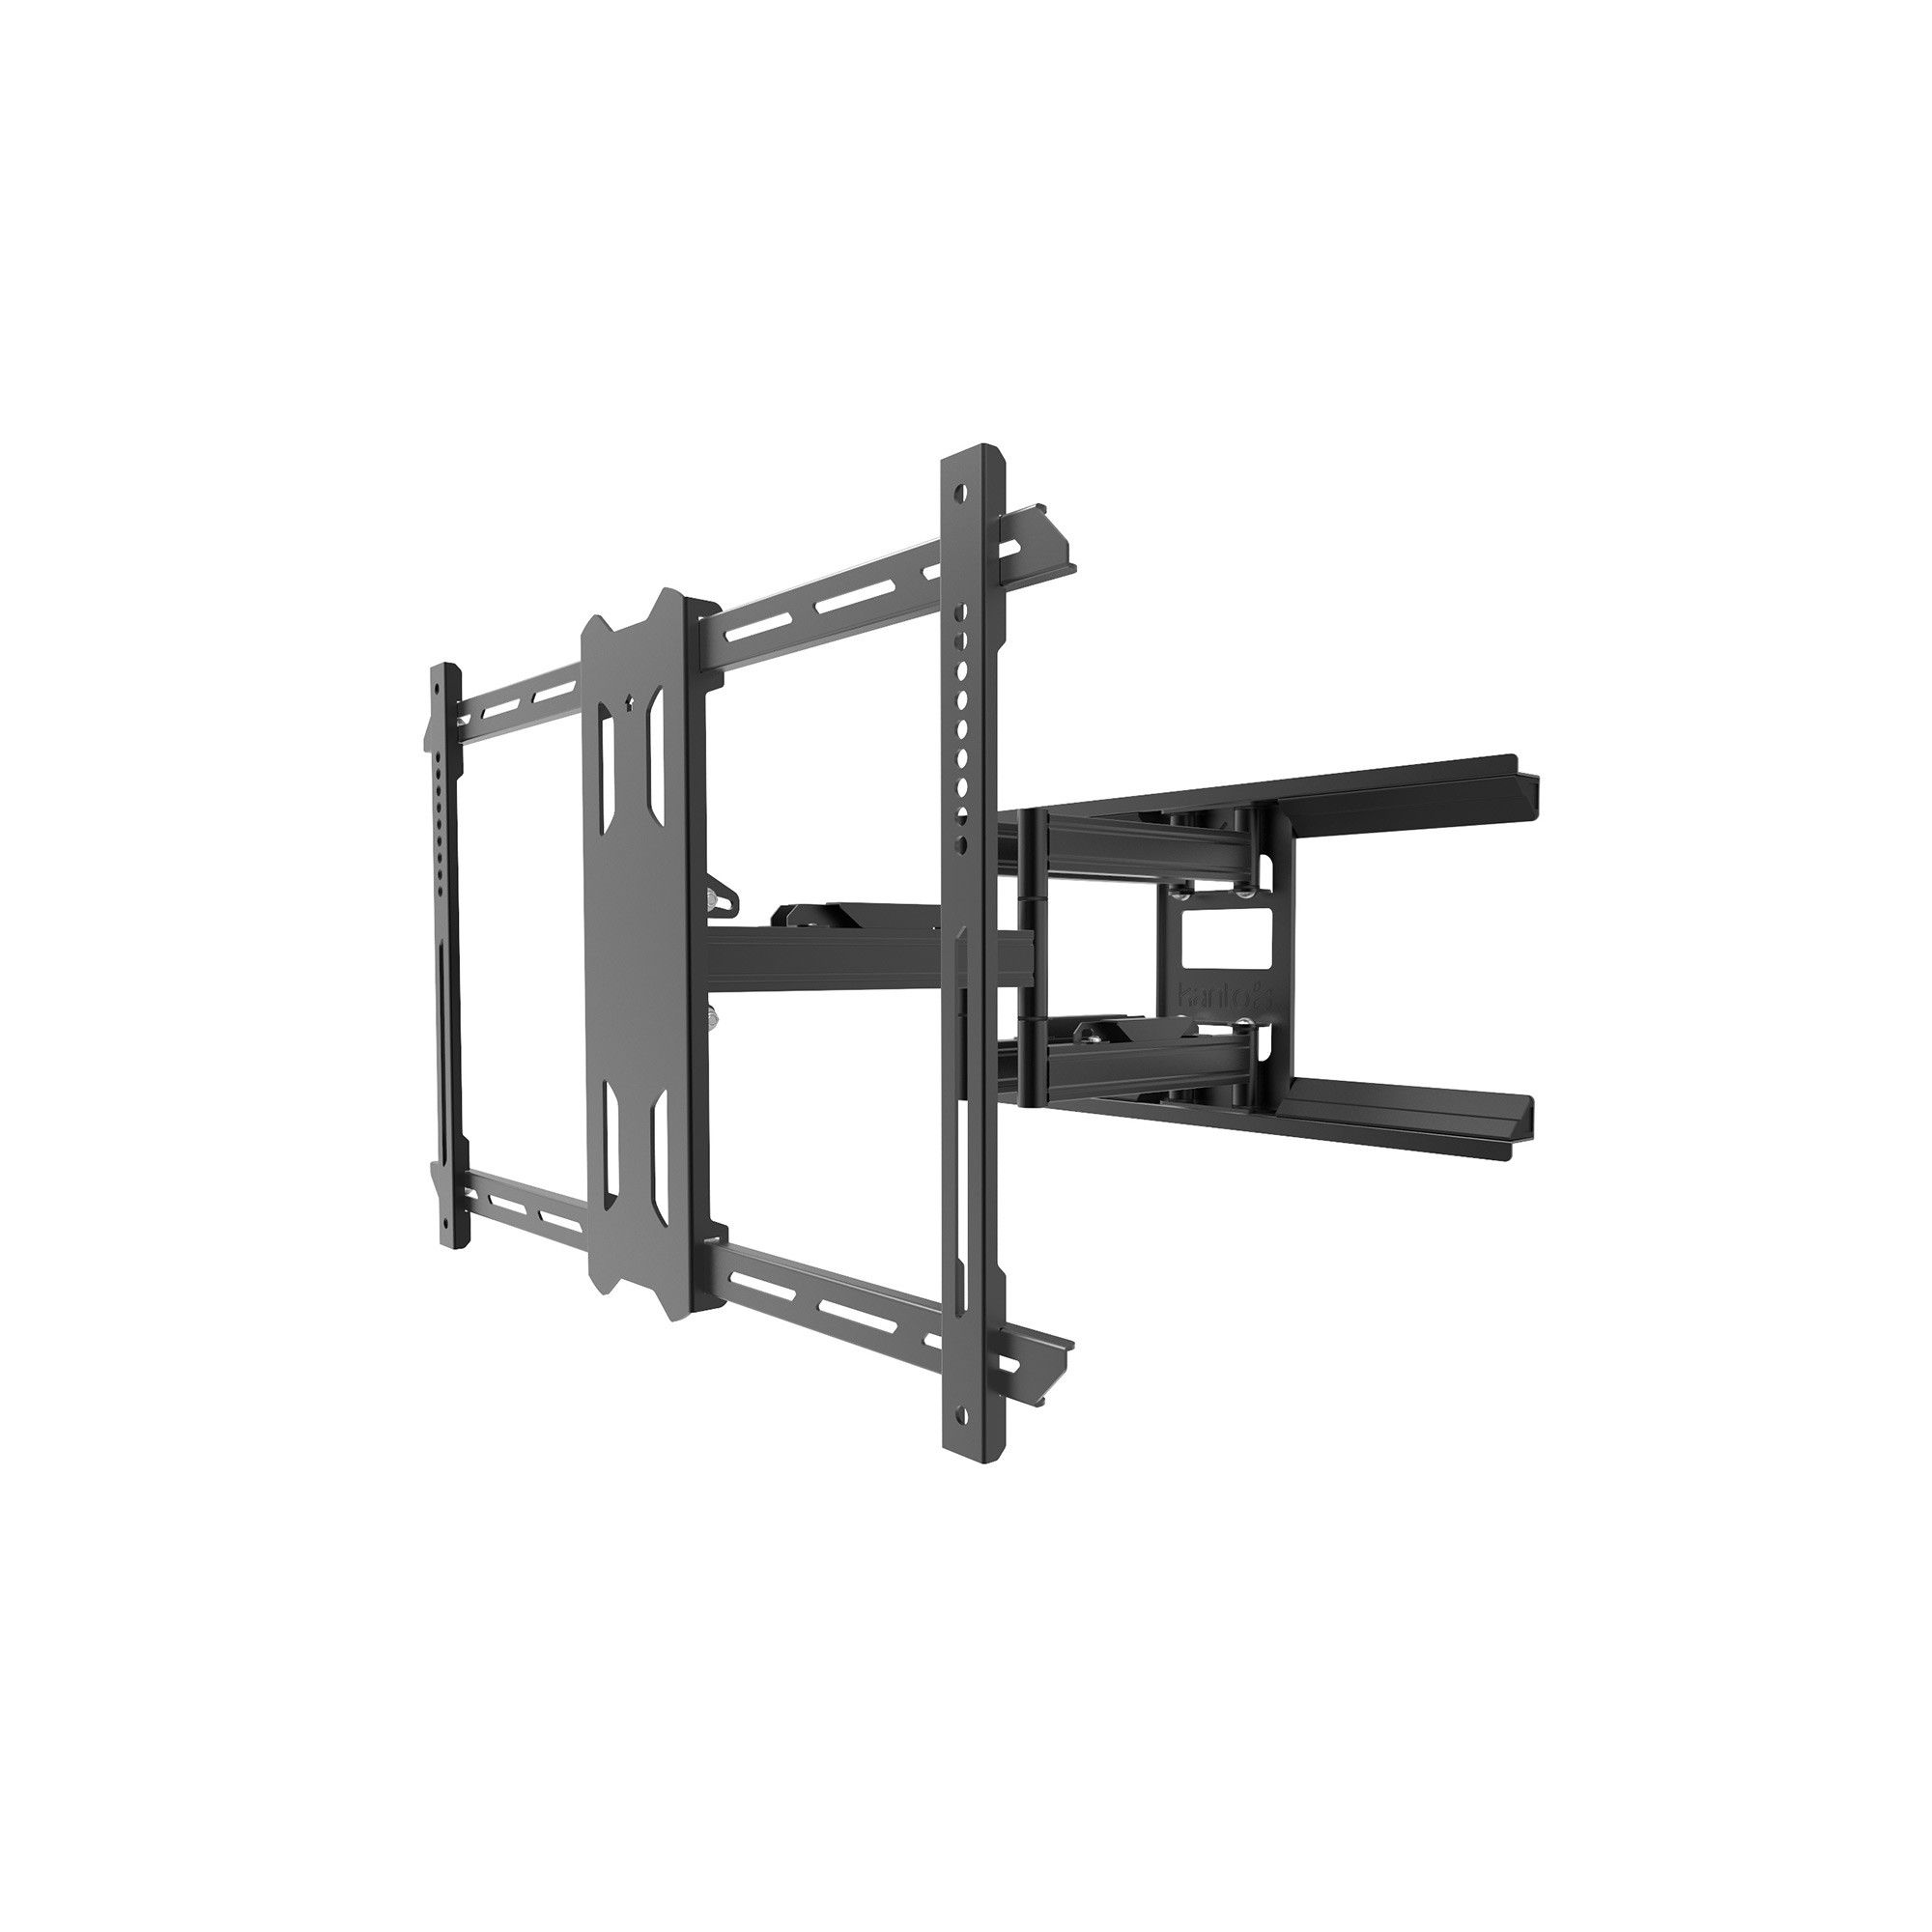 Kanto Pdx650g Articulating Full Motion Outdoor Tv Mount For 37 75 Outdoor Tv Adult Unisex Black Outdoor Tv Mount Mounted Tv Flat Panel Tv